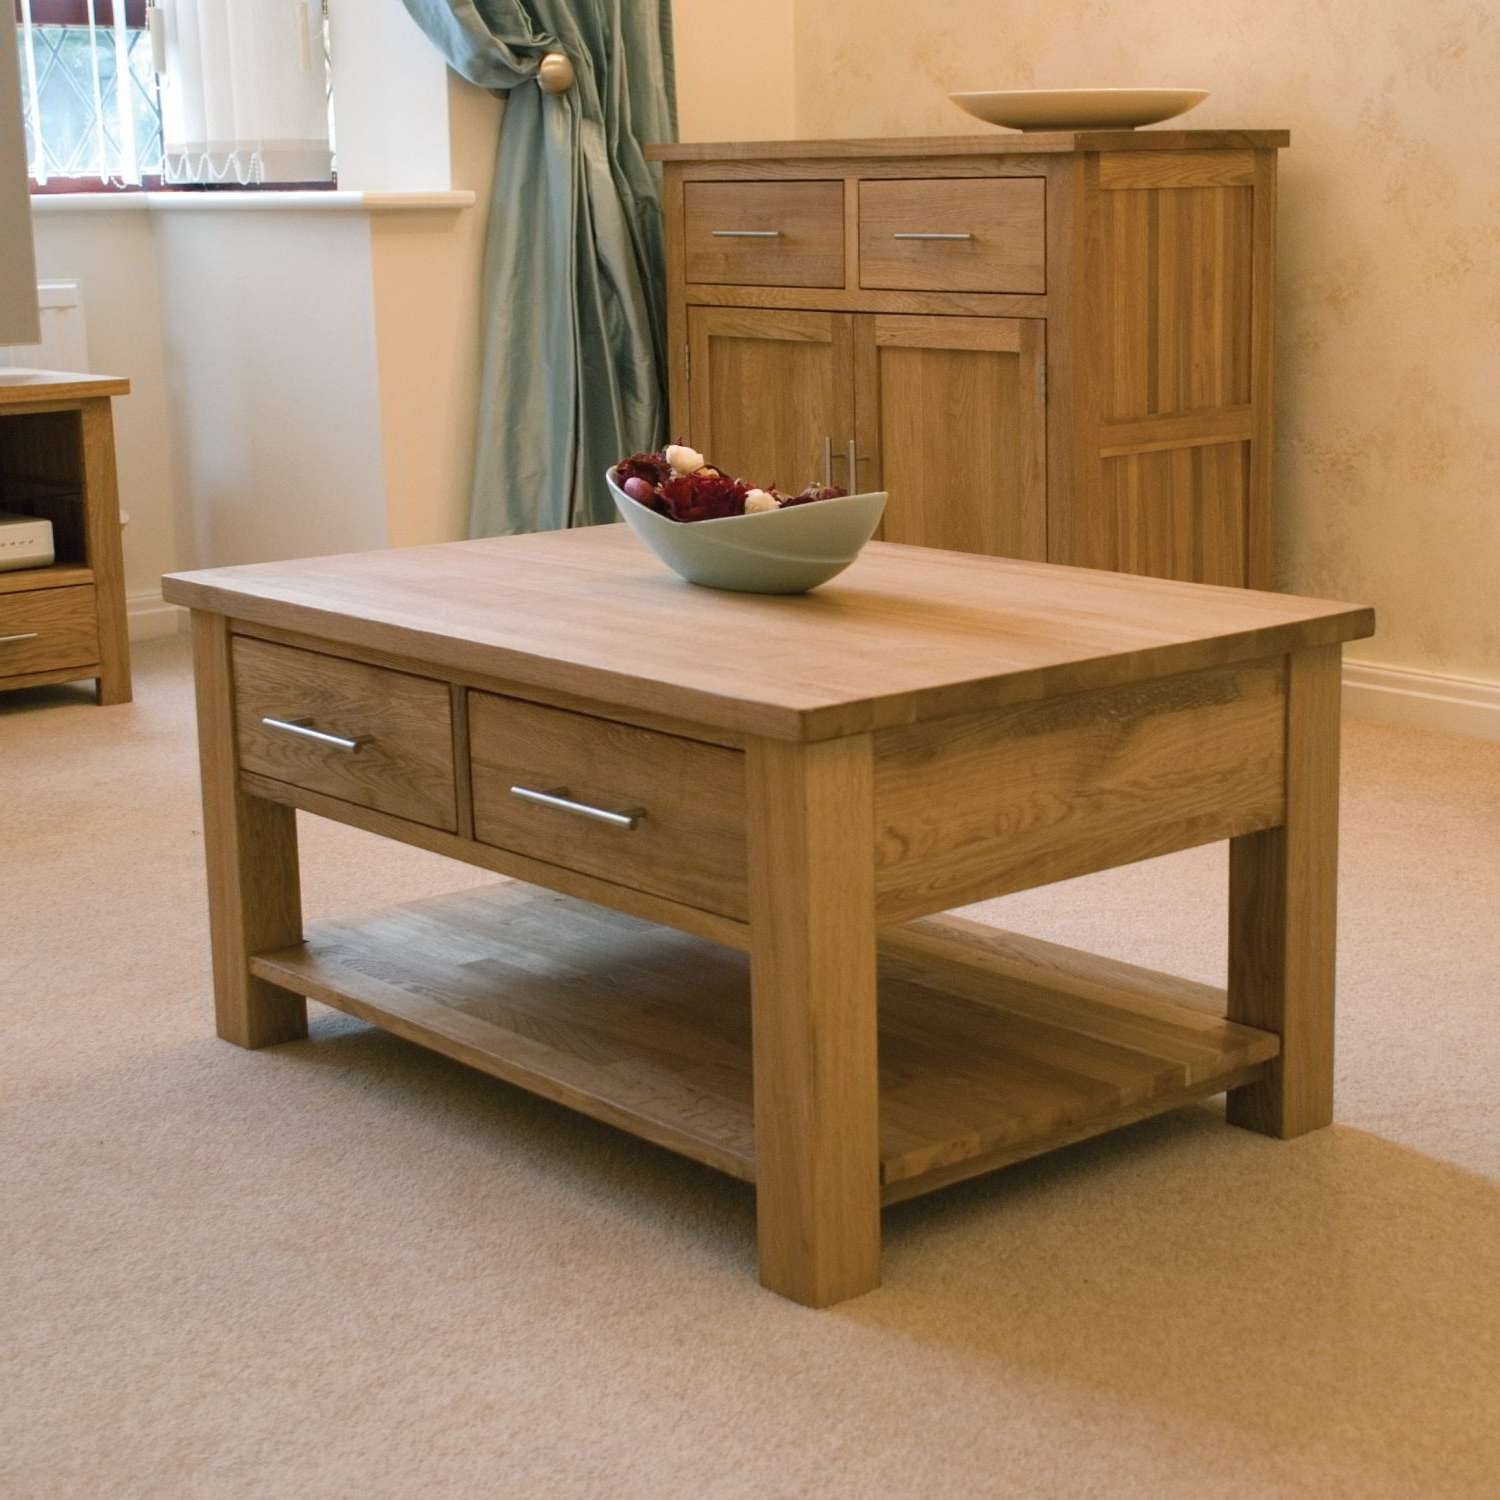 Best And Newest Hardwood Coffee Tables With Storage With Coffee Table : Fabulous Big Coffee Tables Rustic Square Coffee (View 16 of 20)